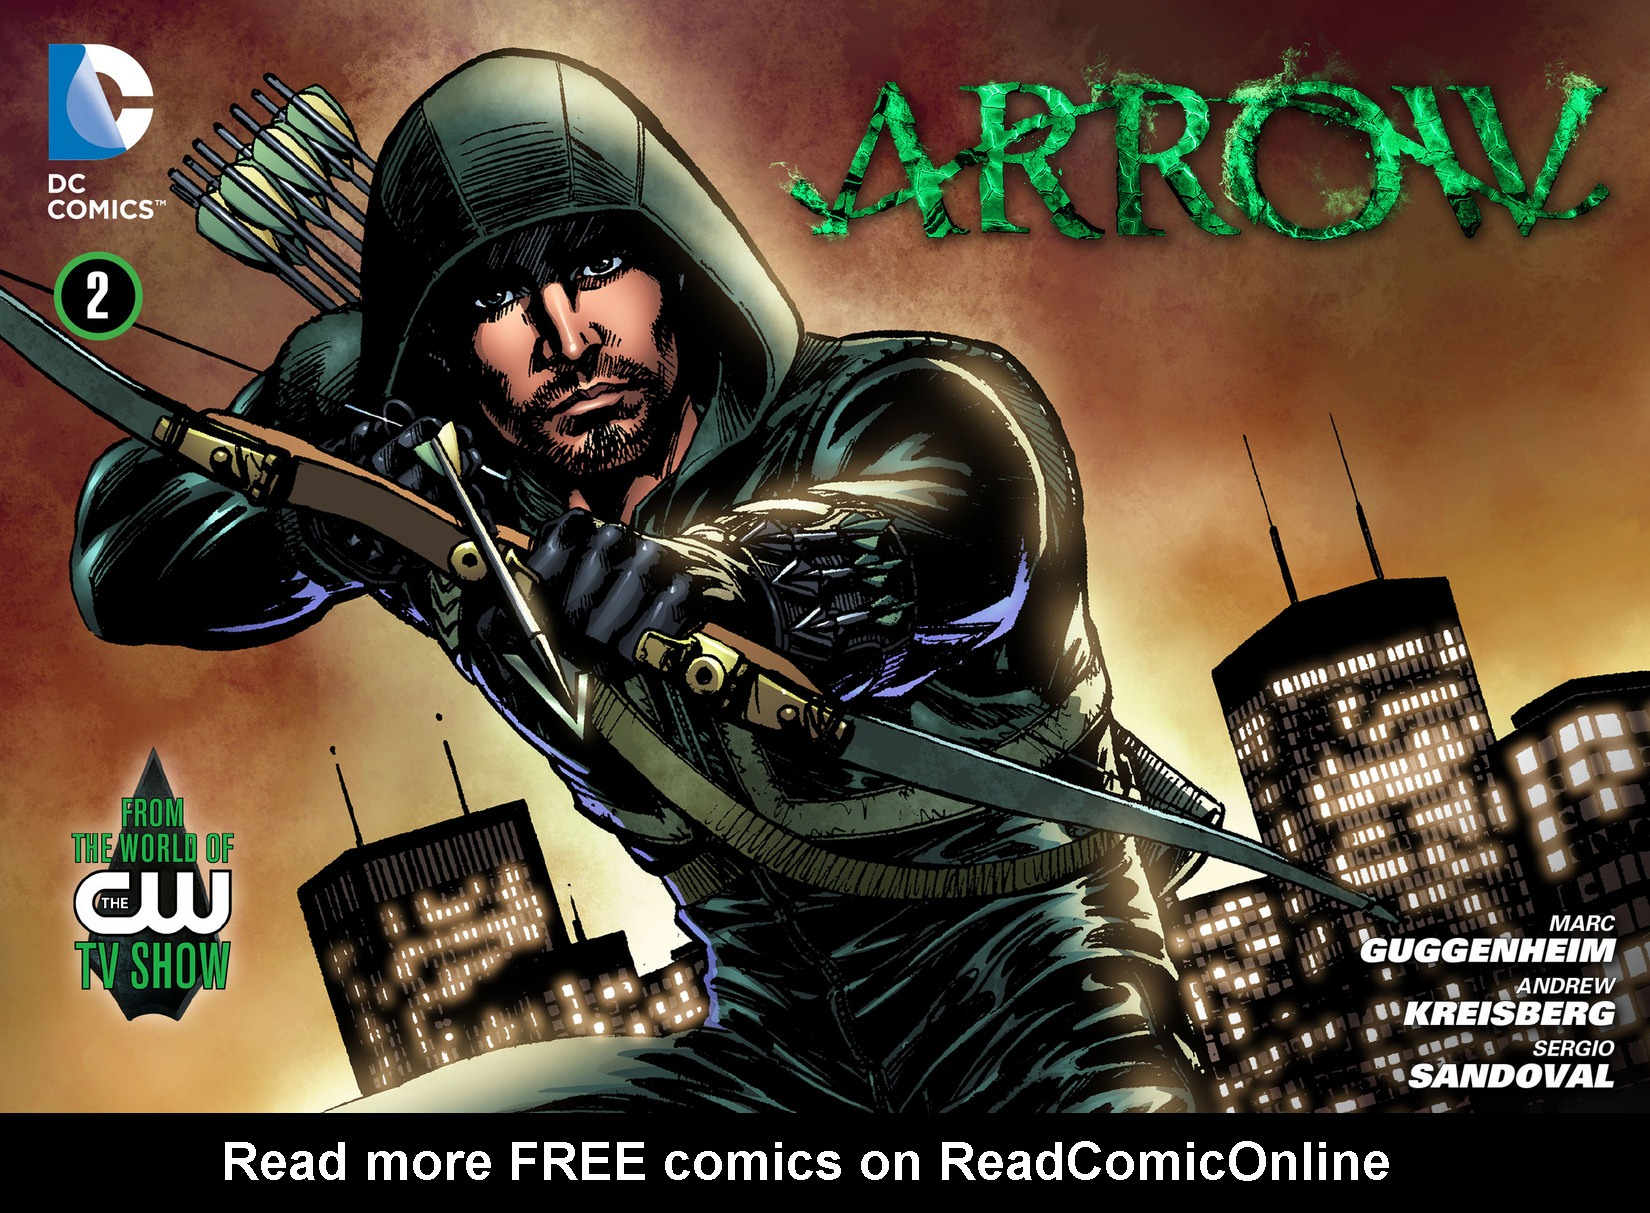 Read online Arrow [II] comic -  Issue #2 - 1